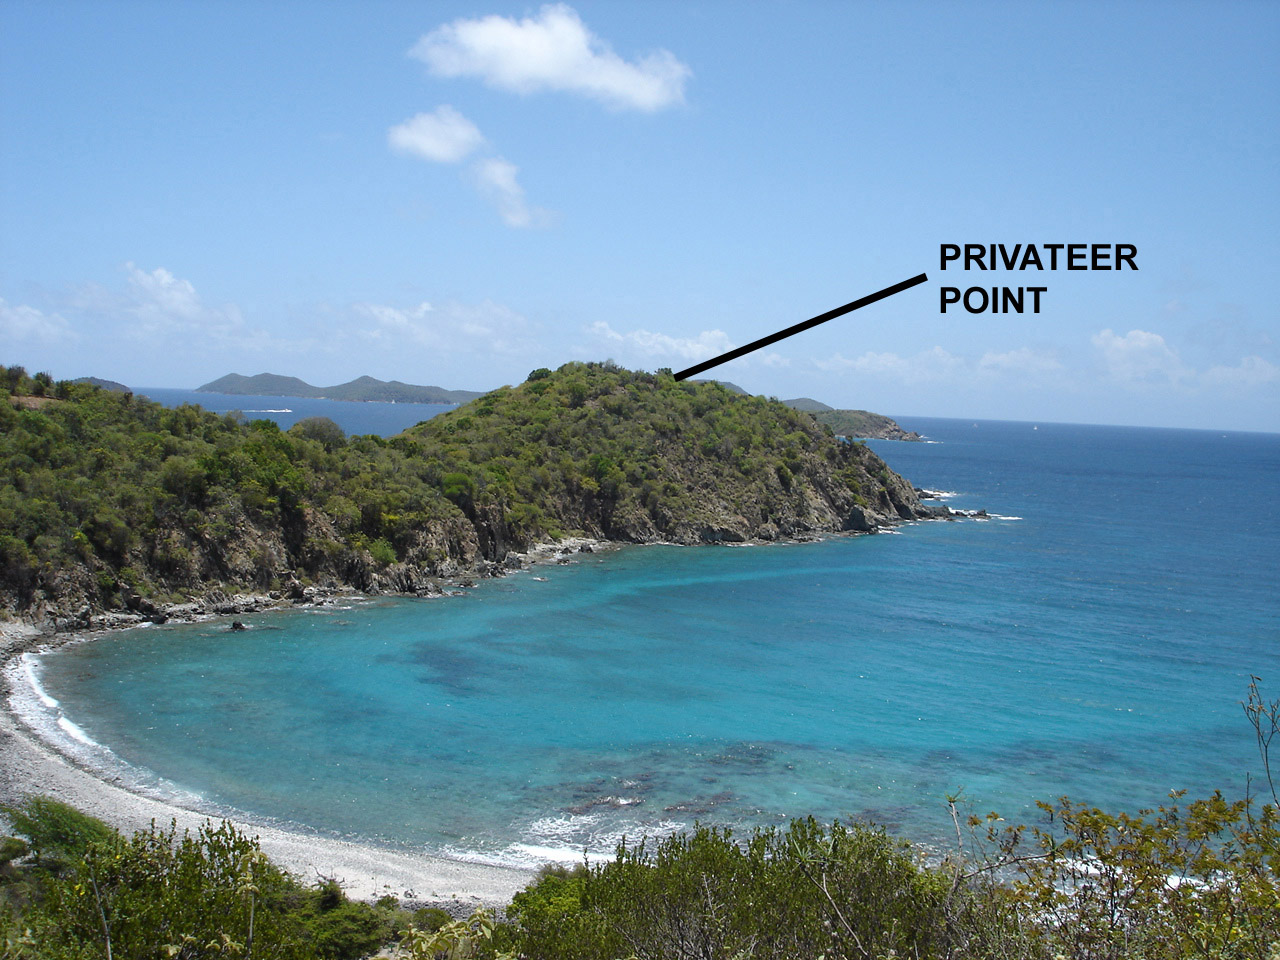 PRIVATEER PT AND BEACH